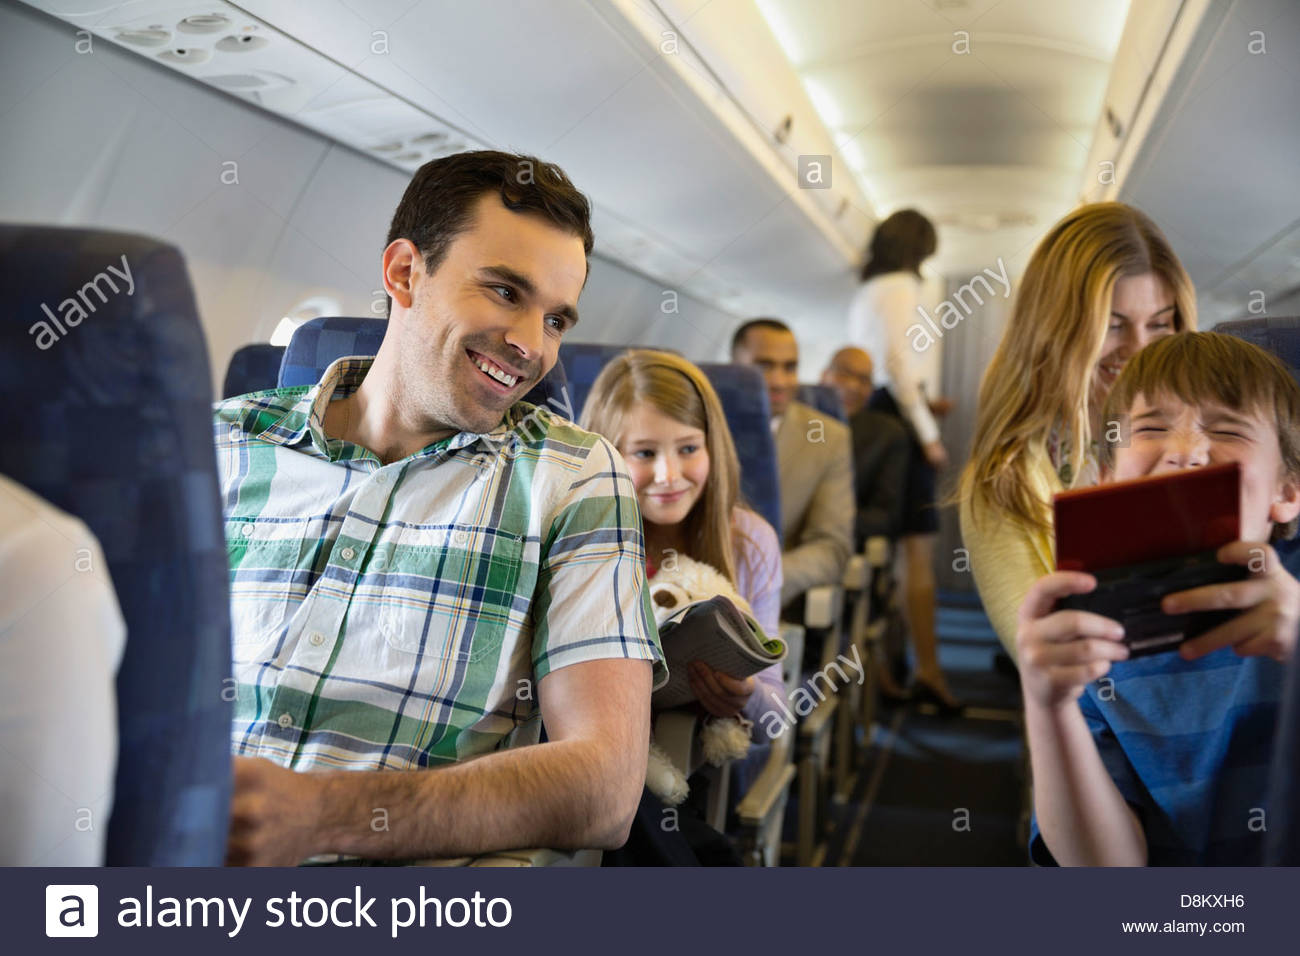 Les passagers qui voyagent en avion Photo Stock